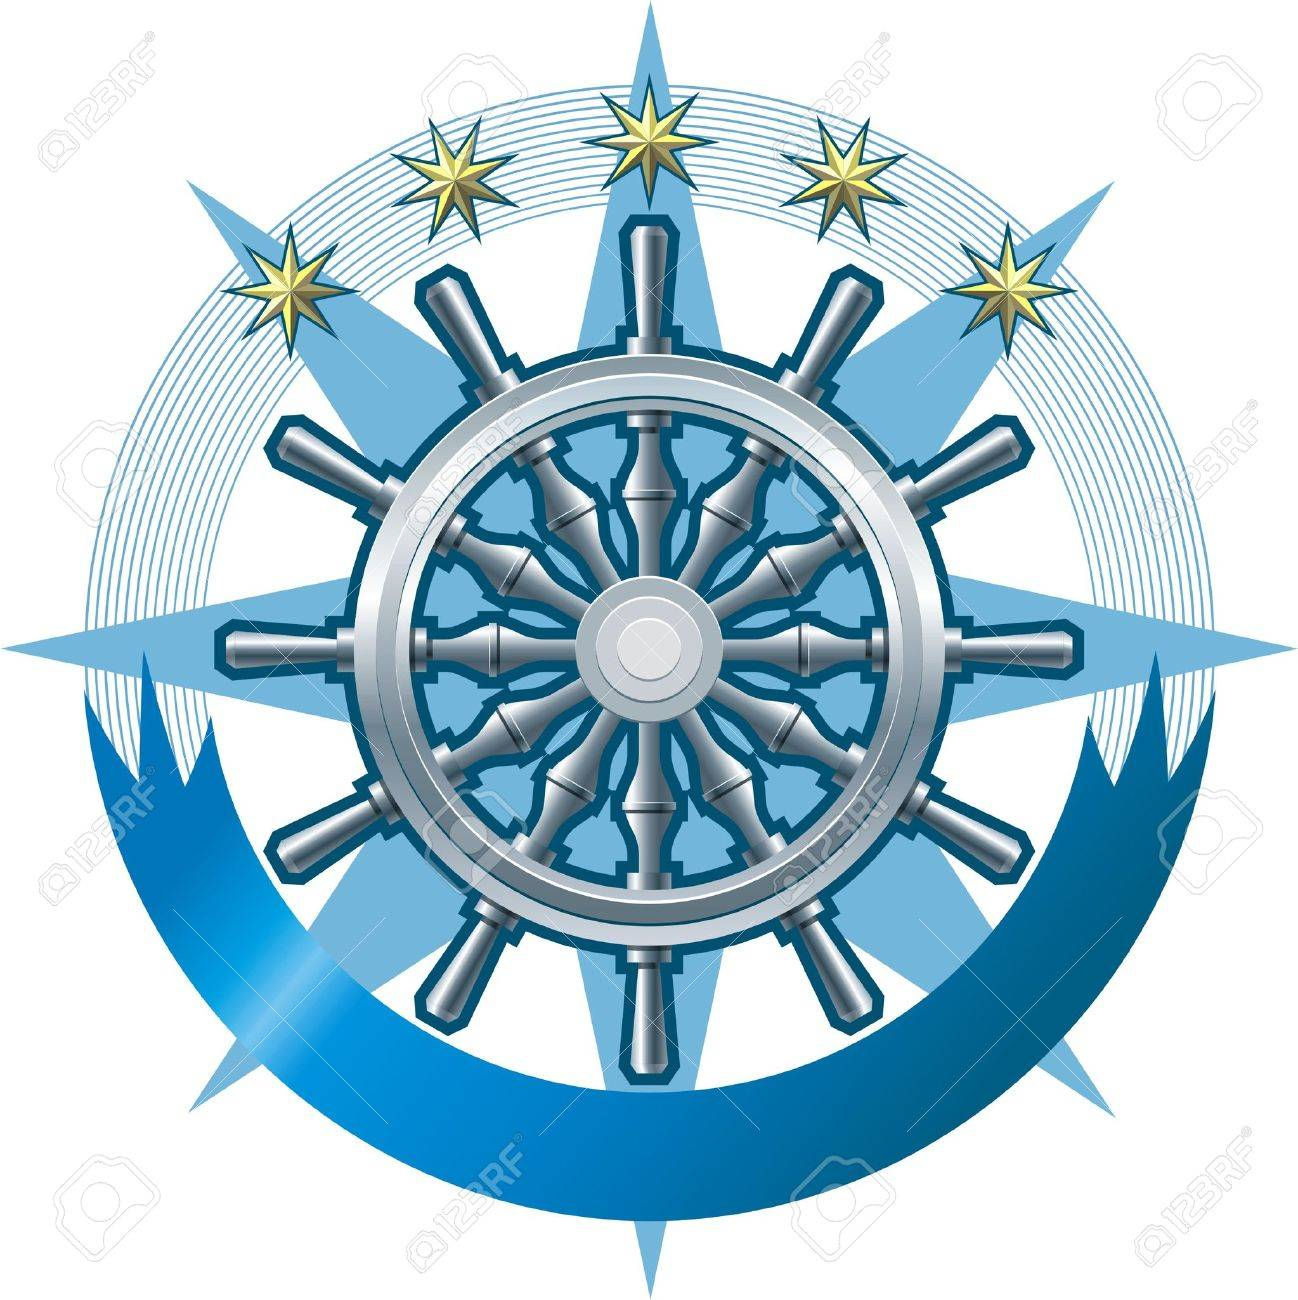 Marine Emblem Royalty Free Cliparts, Vectors, And Stock ...